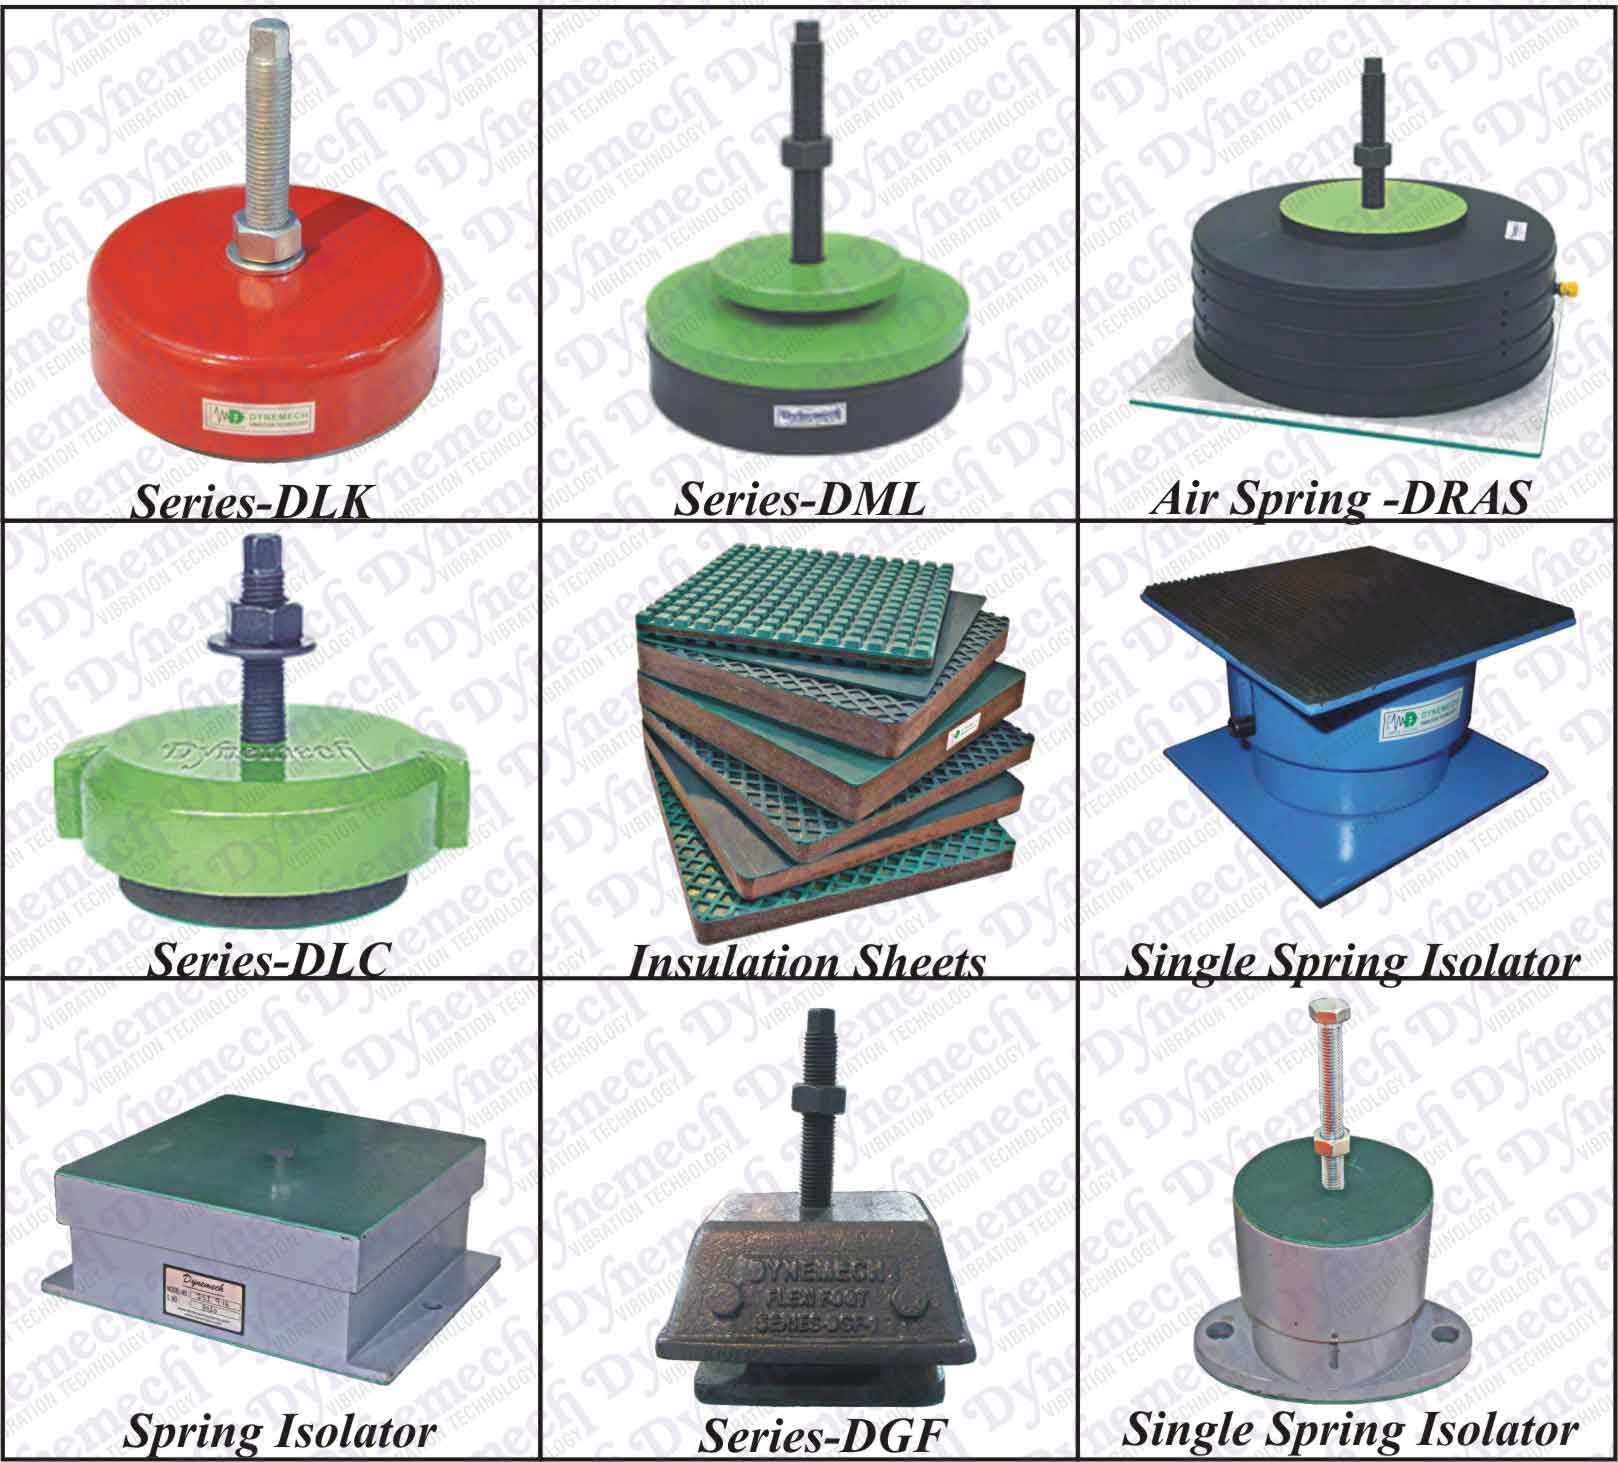 Machine Leveling Mounts : The array of anti vibration pads offered by dynemech